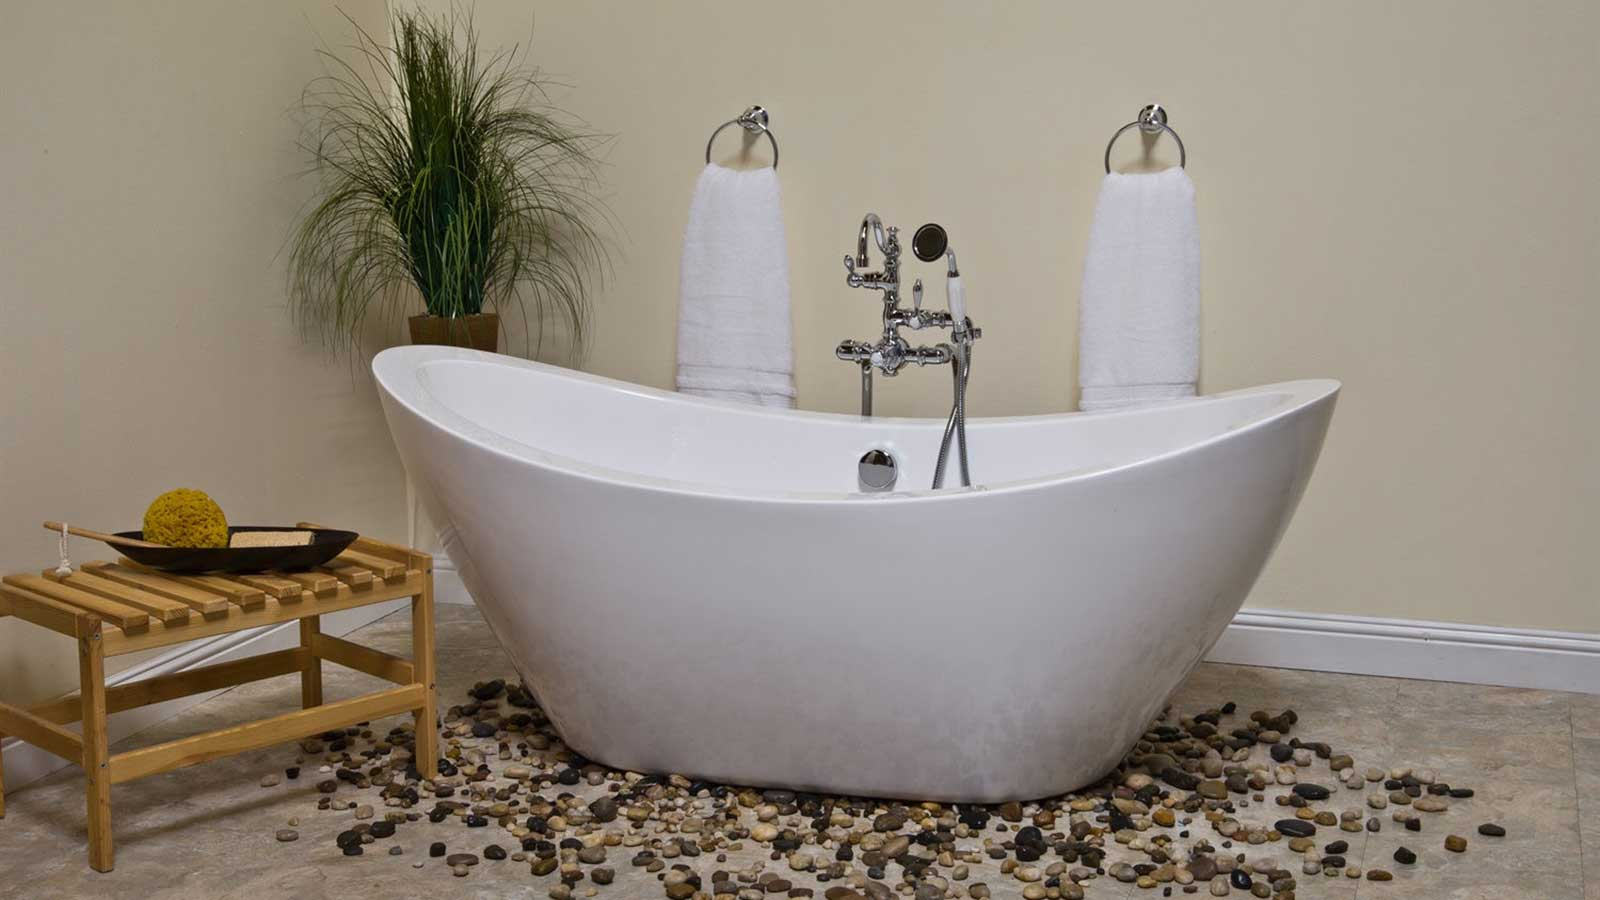 Bathtub Materials - They Make A Difference!